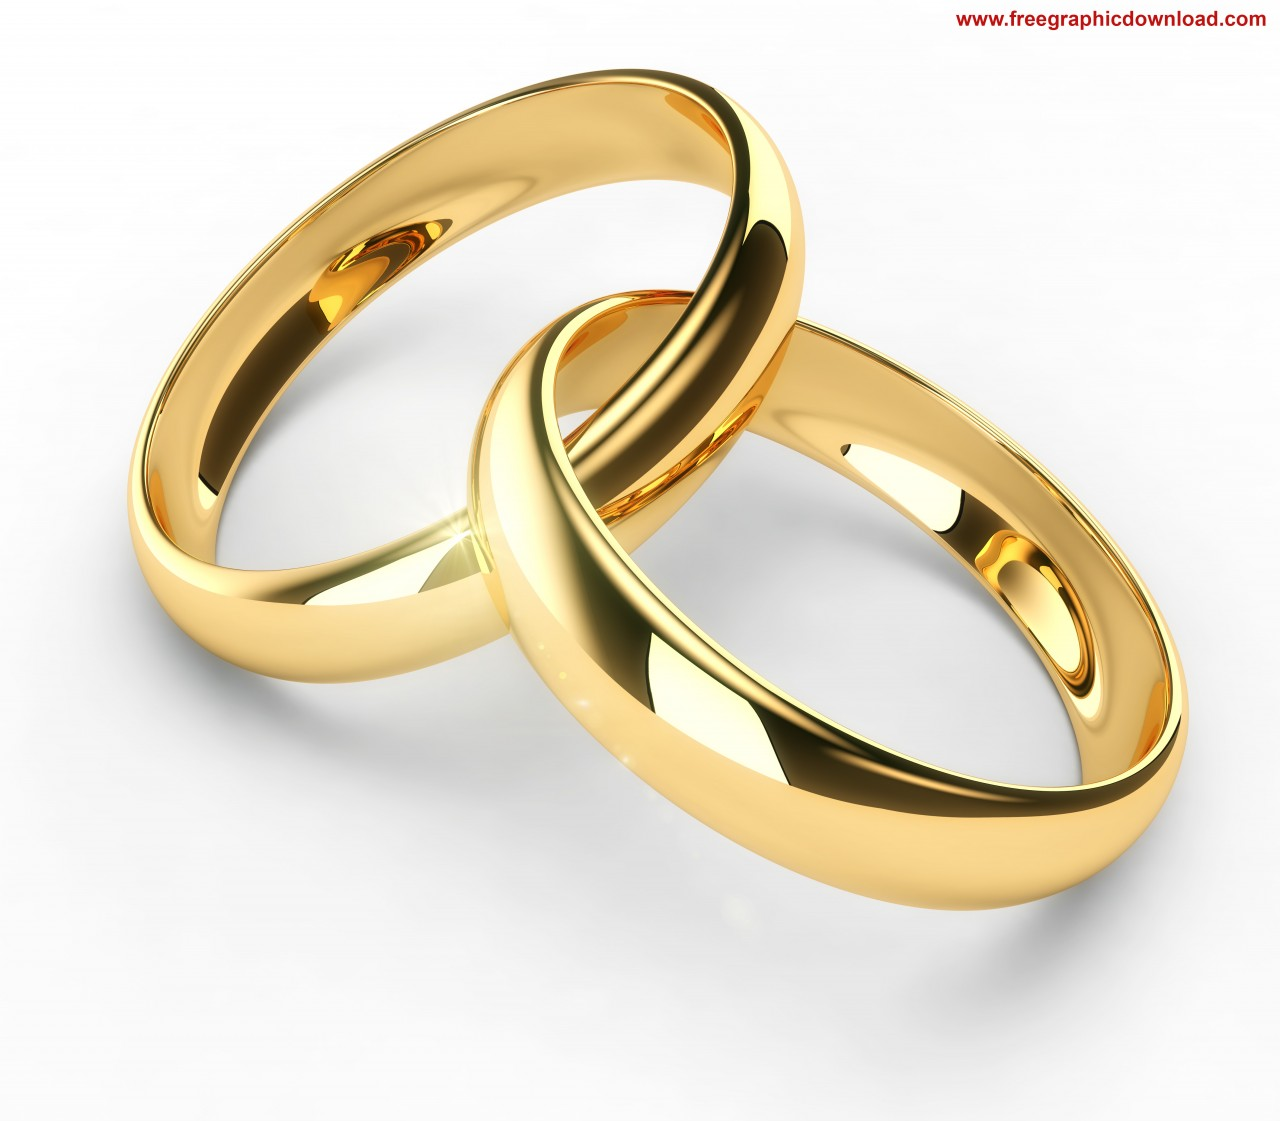 gold wedding rings clip art the wedding design guide - Wedding Ring Pics